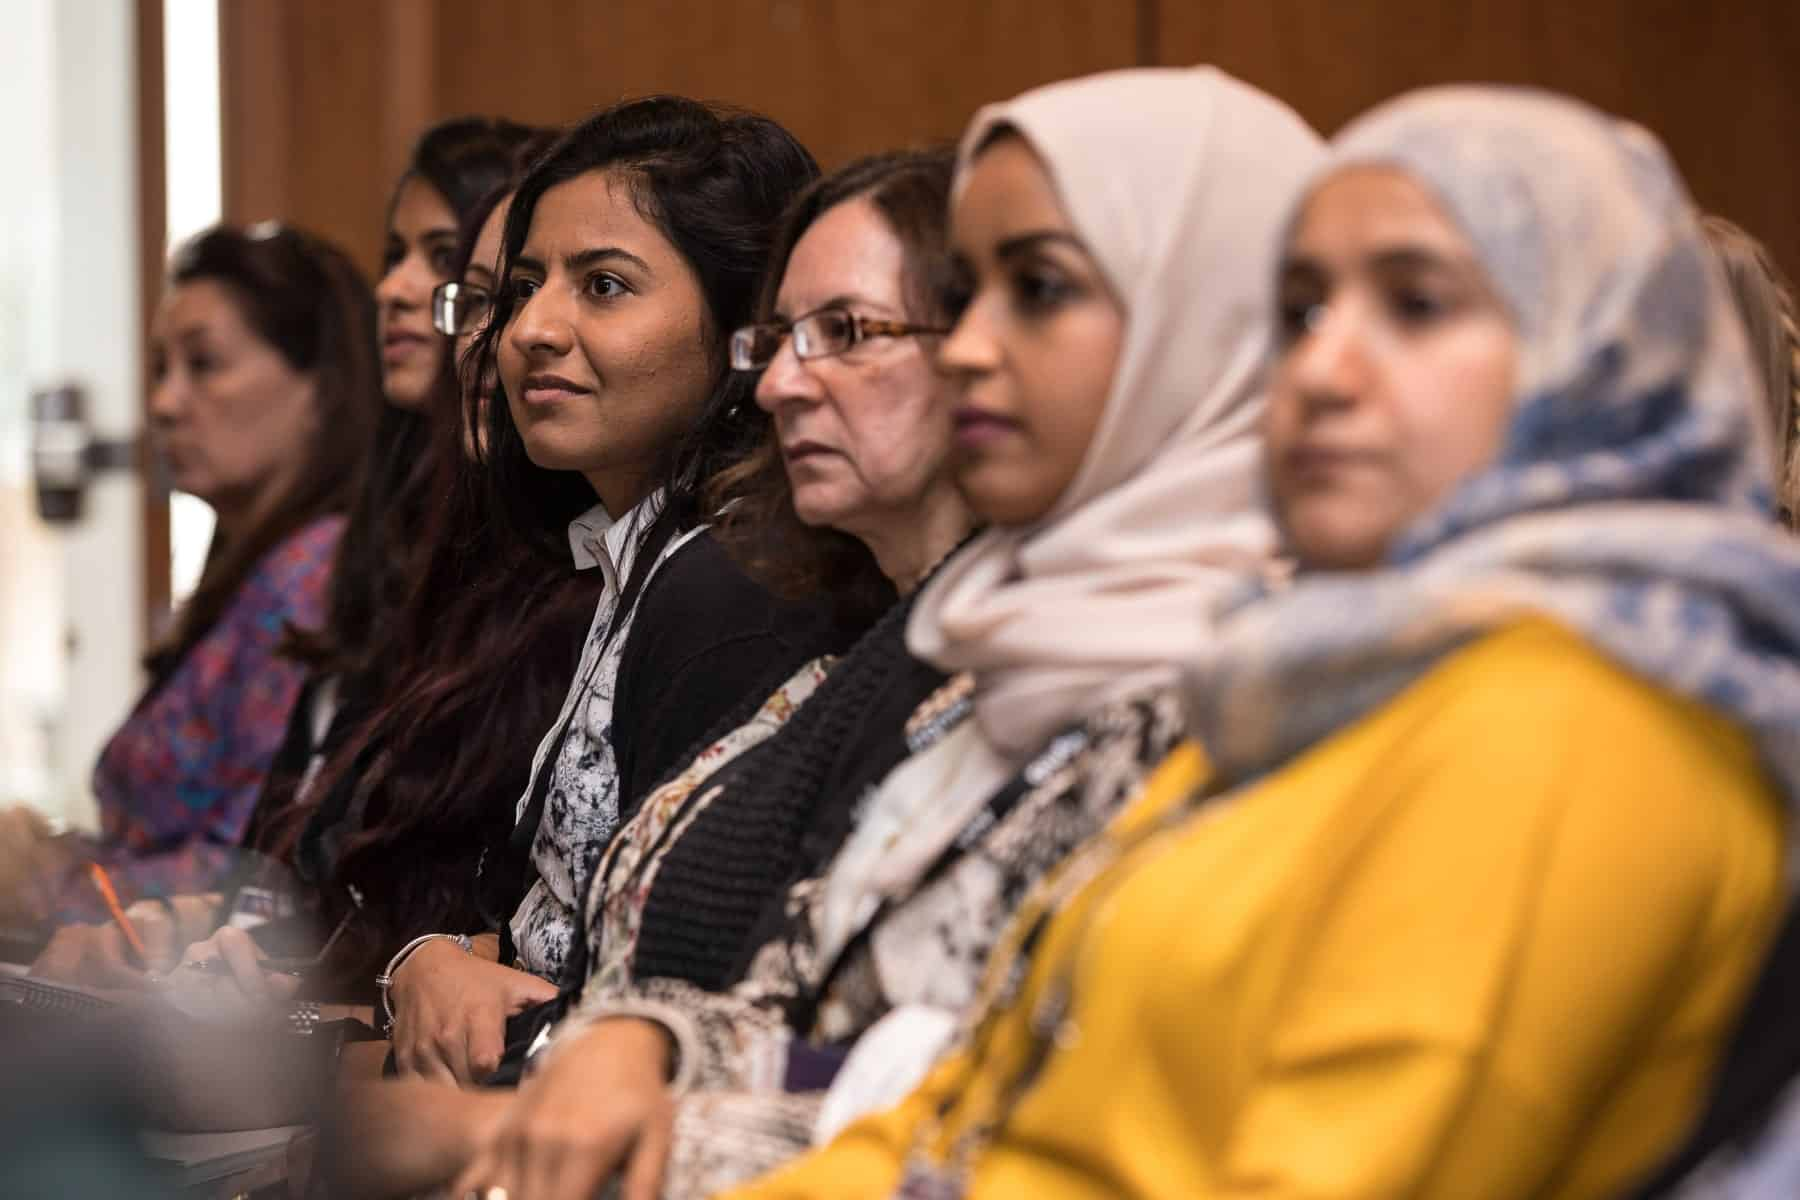 Academy conference members listening during conference presentation